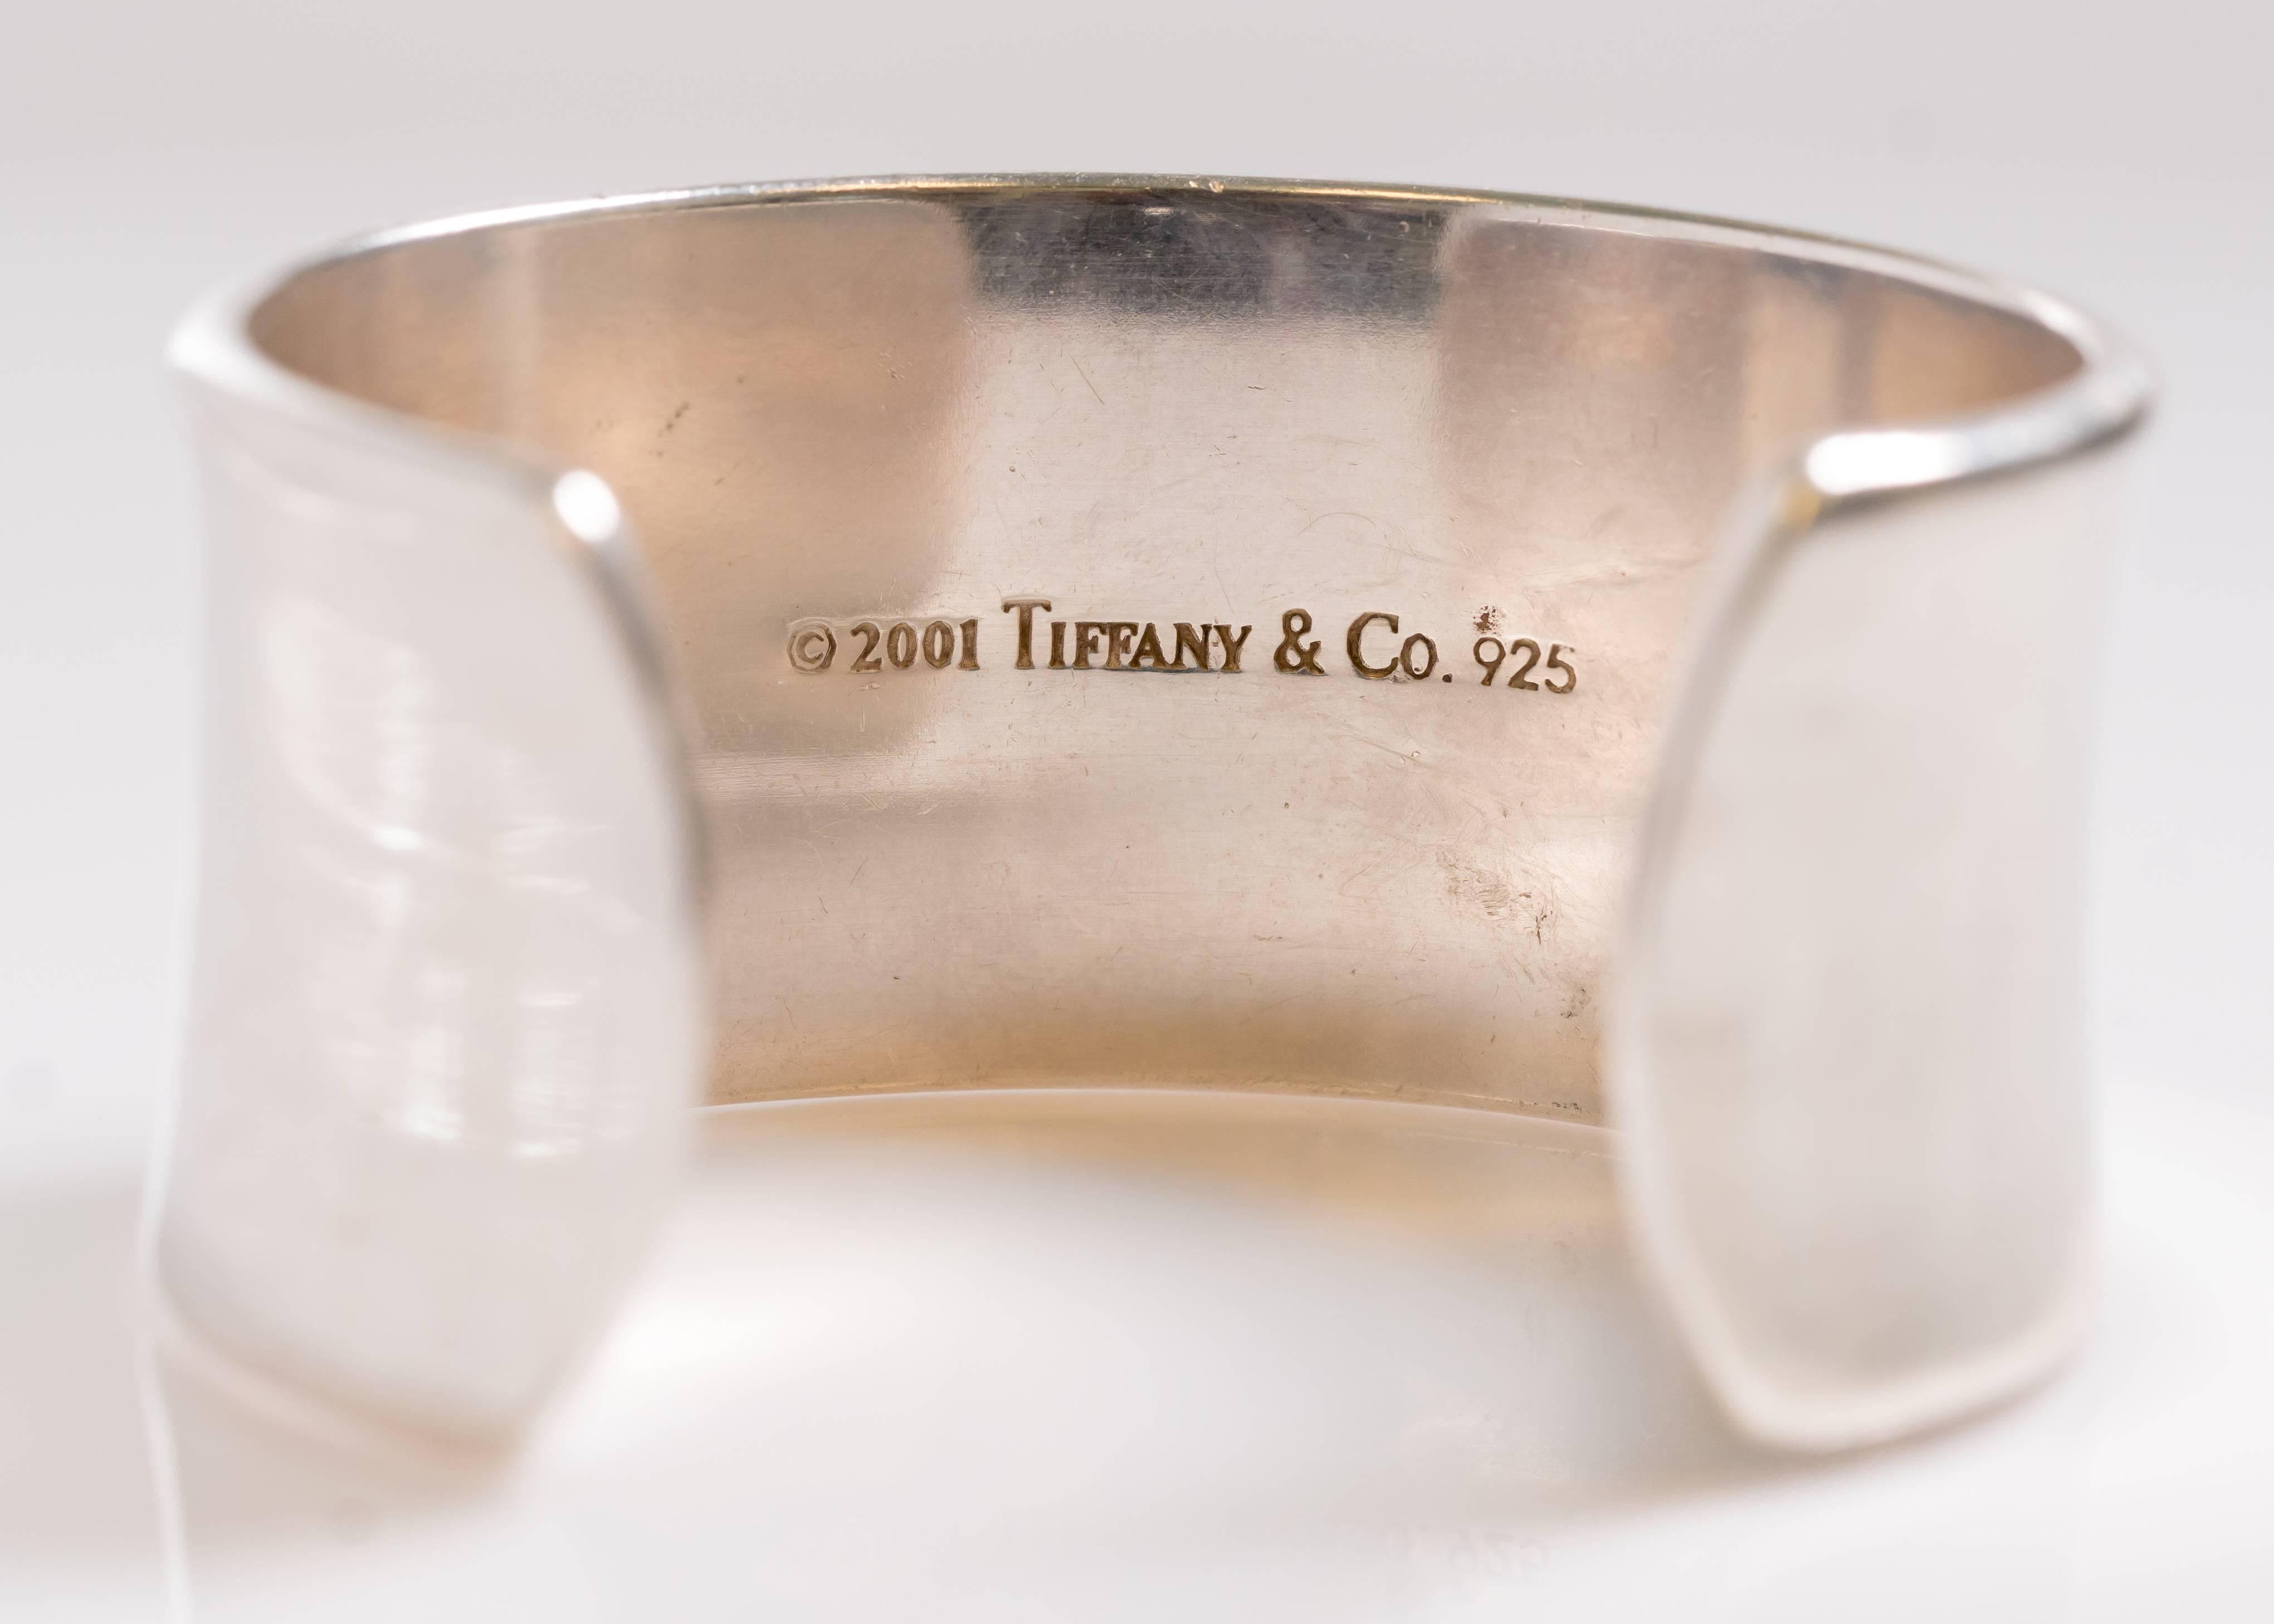 ac0b935e47d0d Tiffany & Co. 1837 Collection Sterling Silver Cuff Bracelet